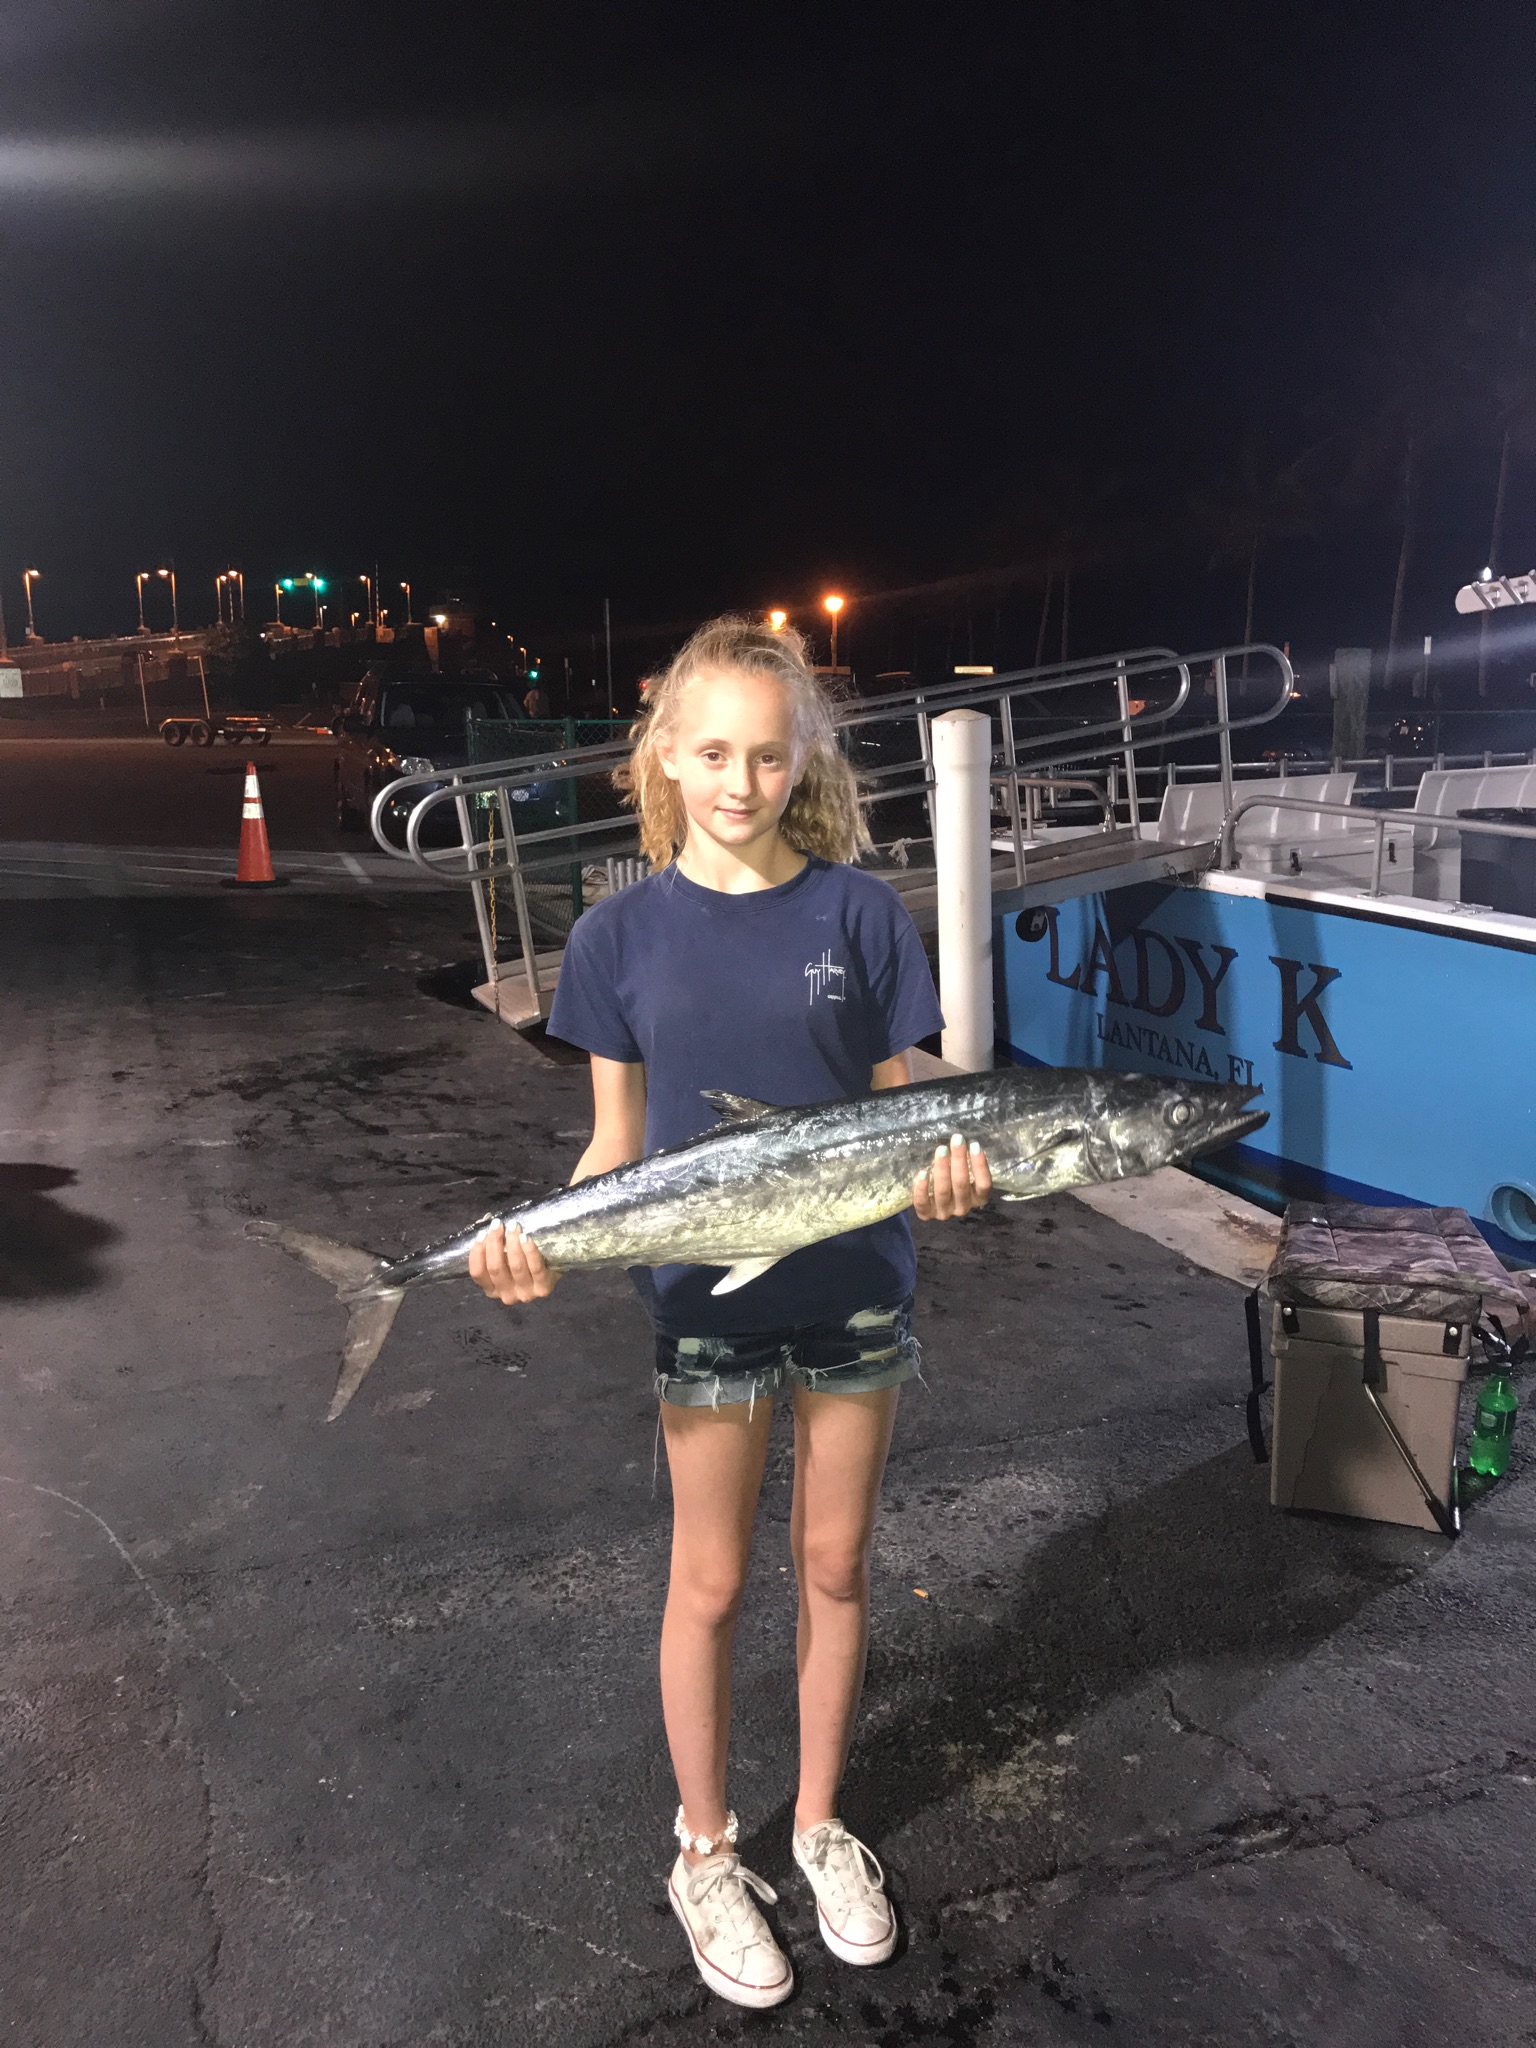 Best place to fish at night in lake worth bar jack for Bar jack fishing